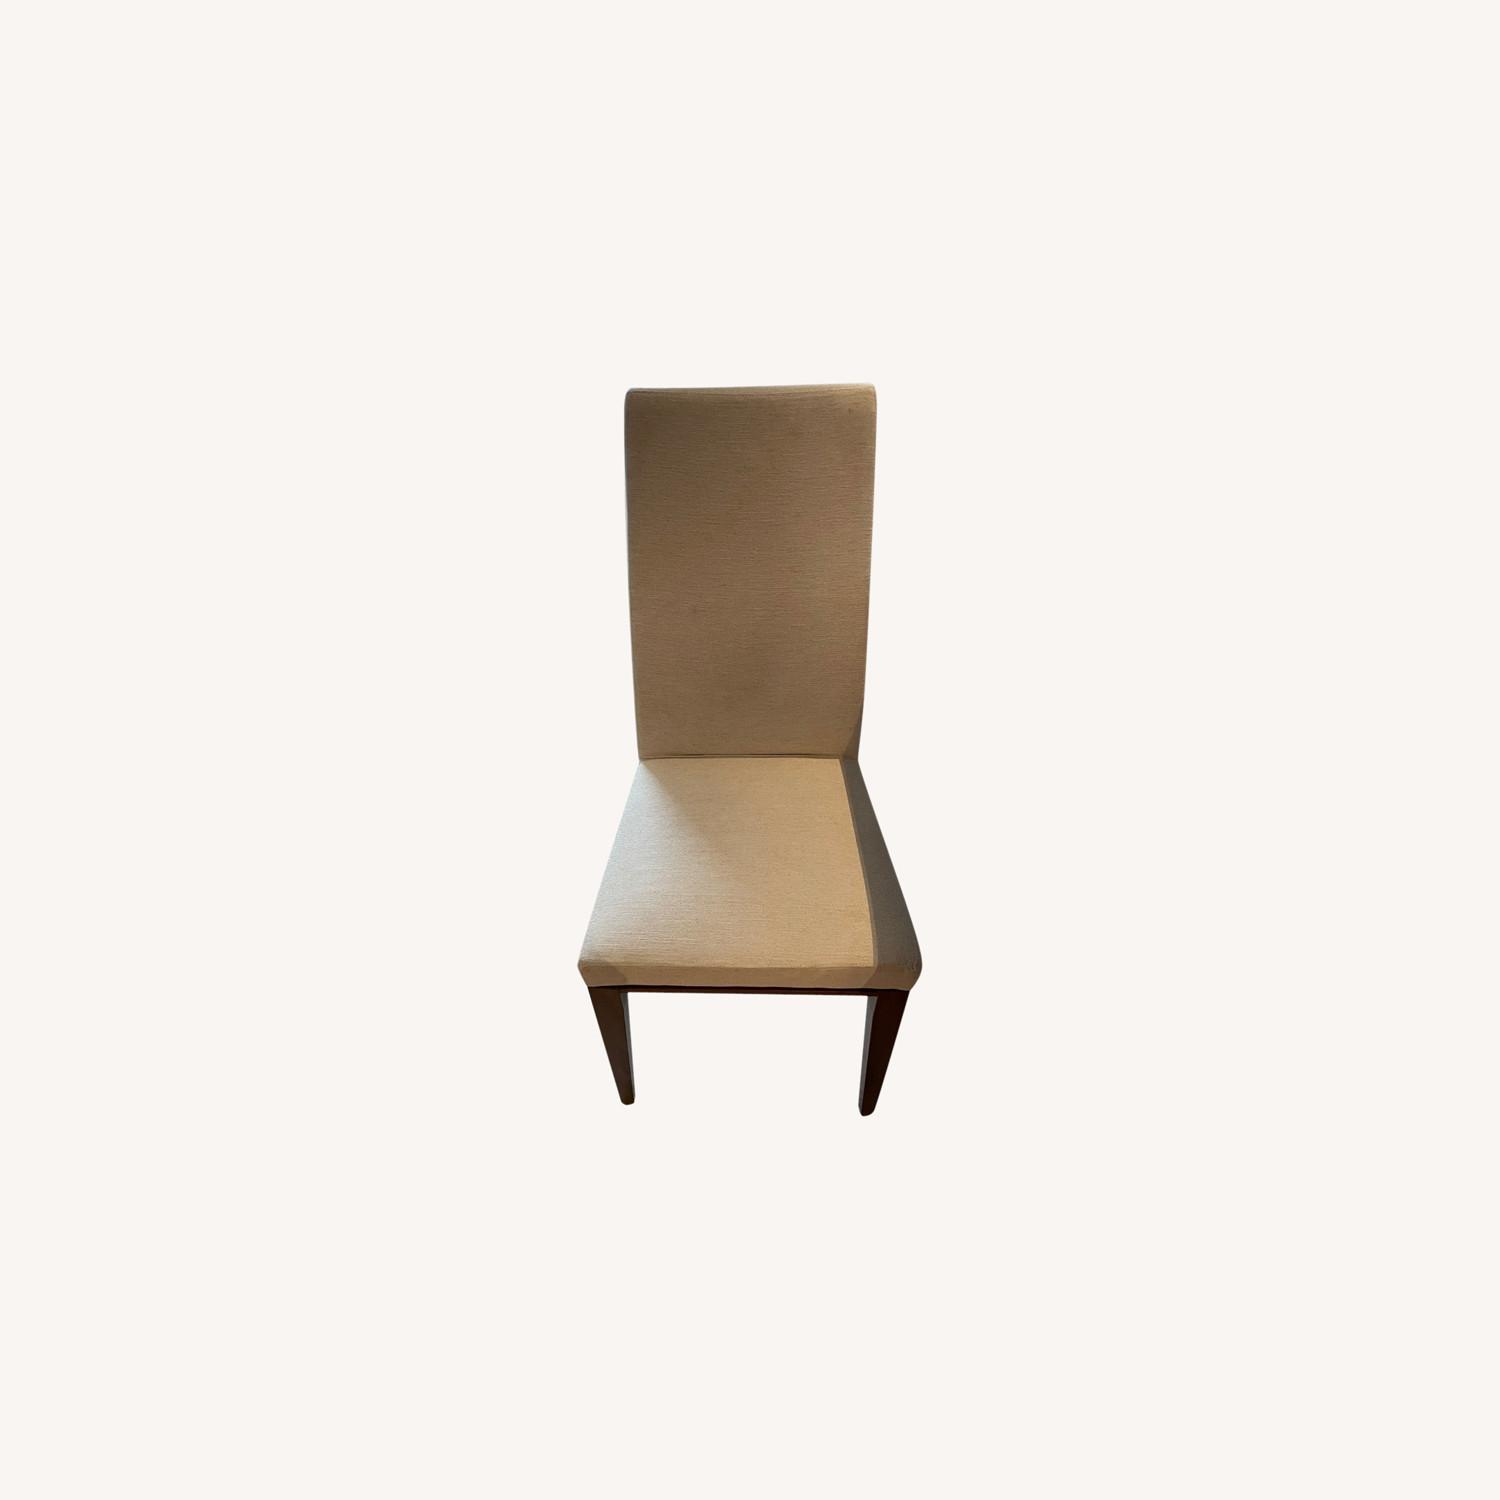 Calligaris Bess High Dining Chairs - image-0